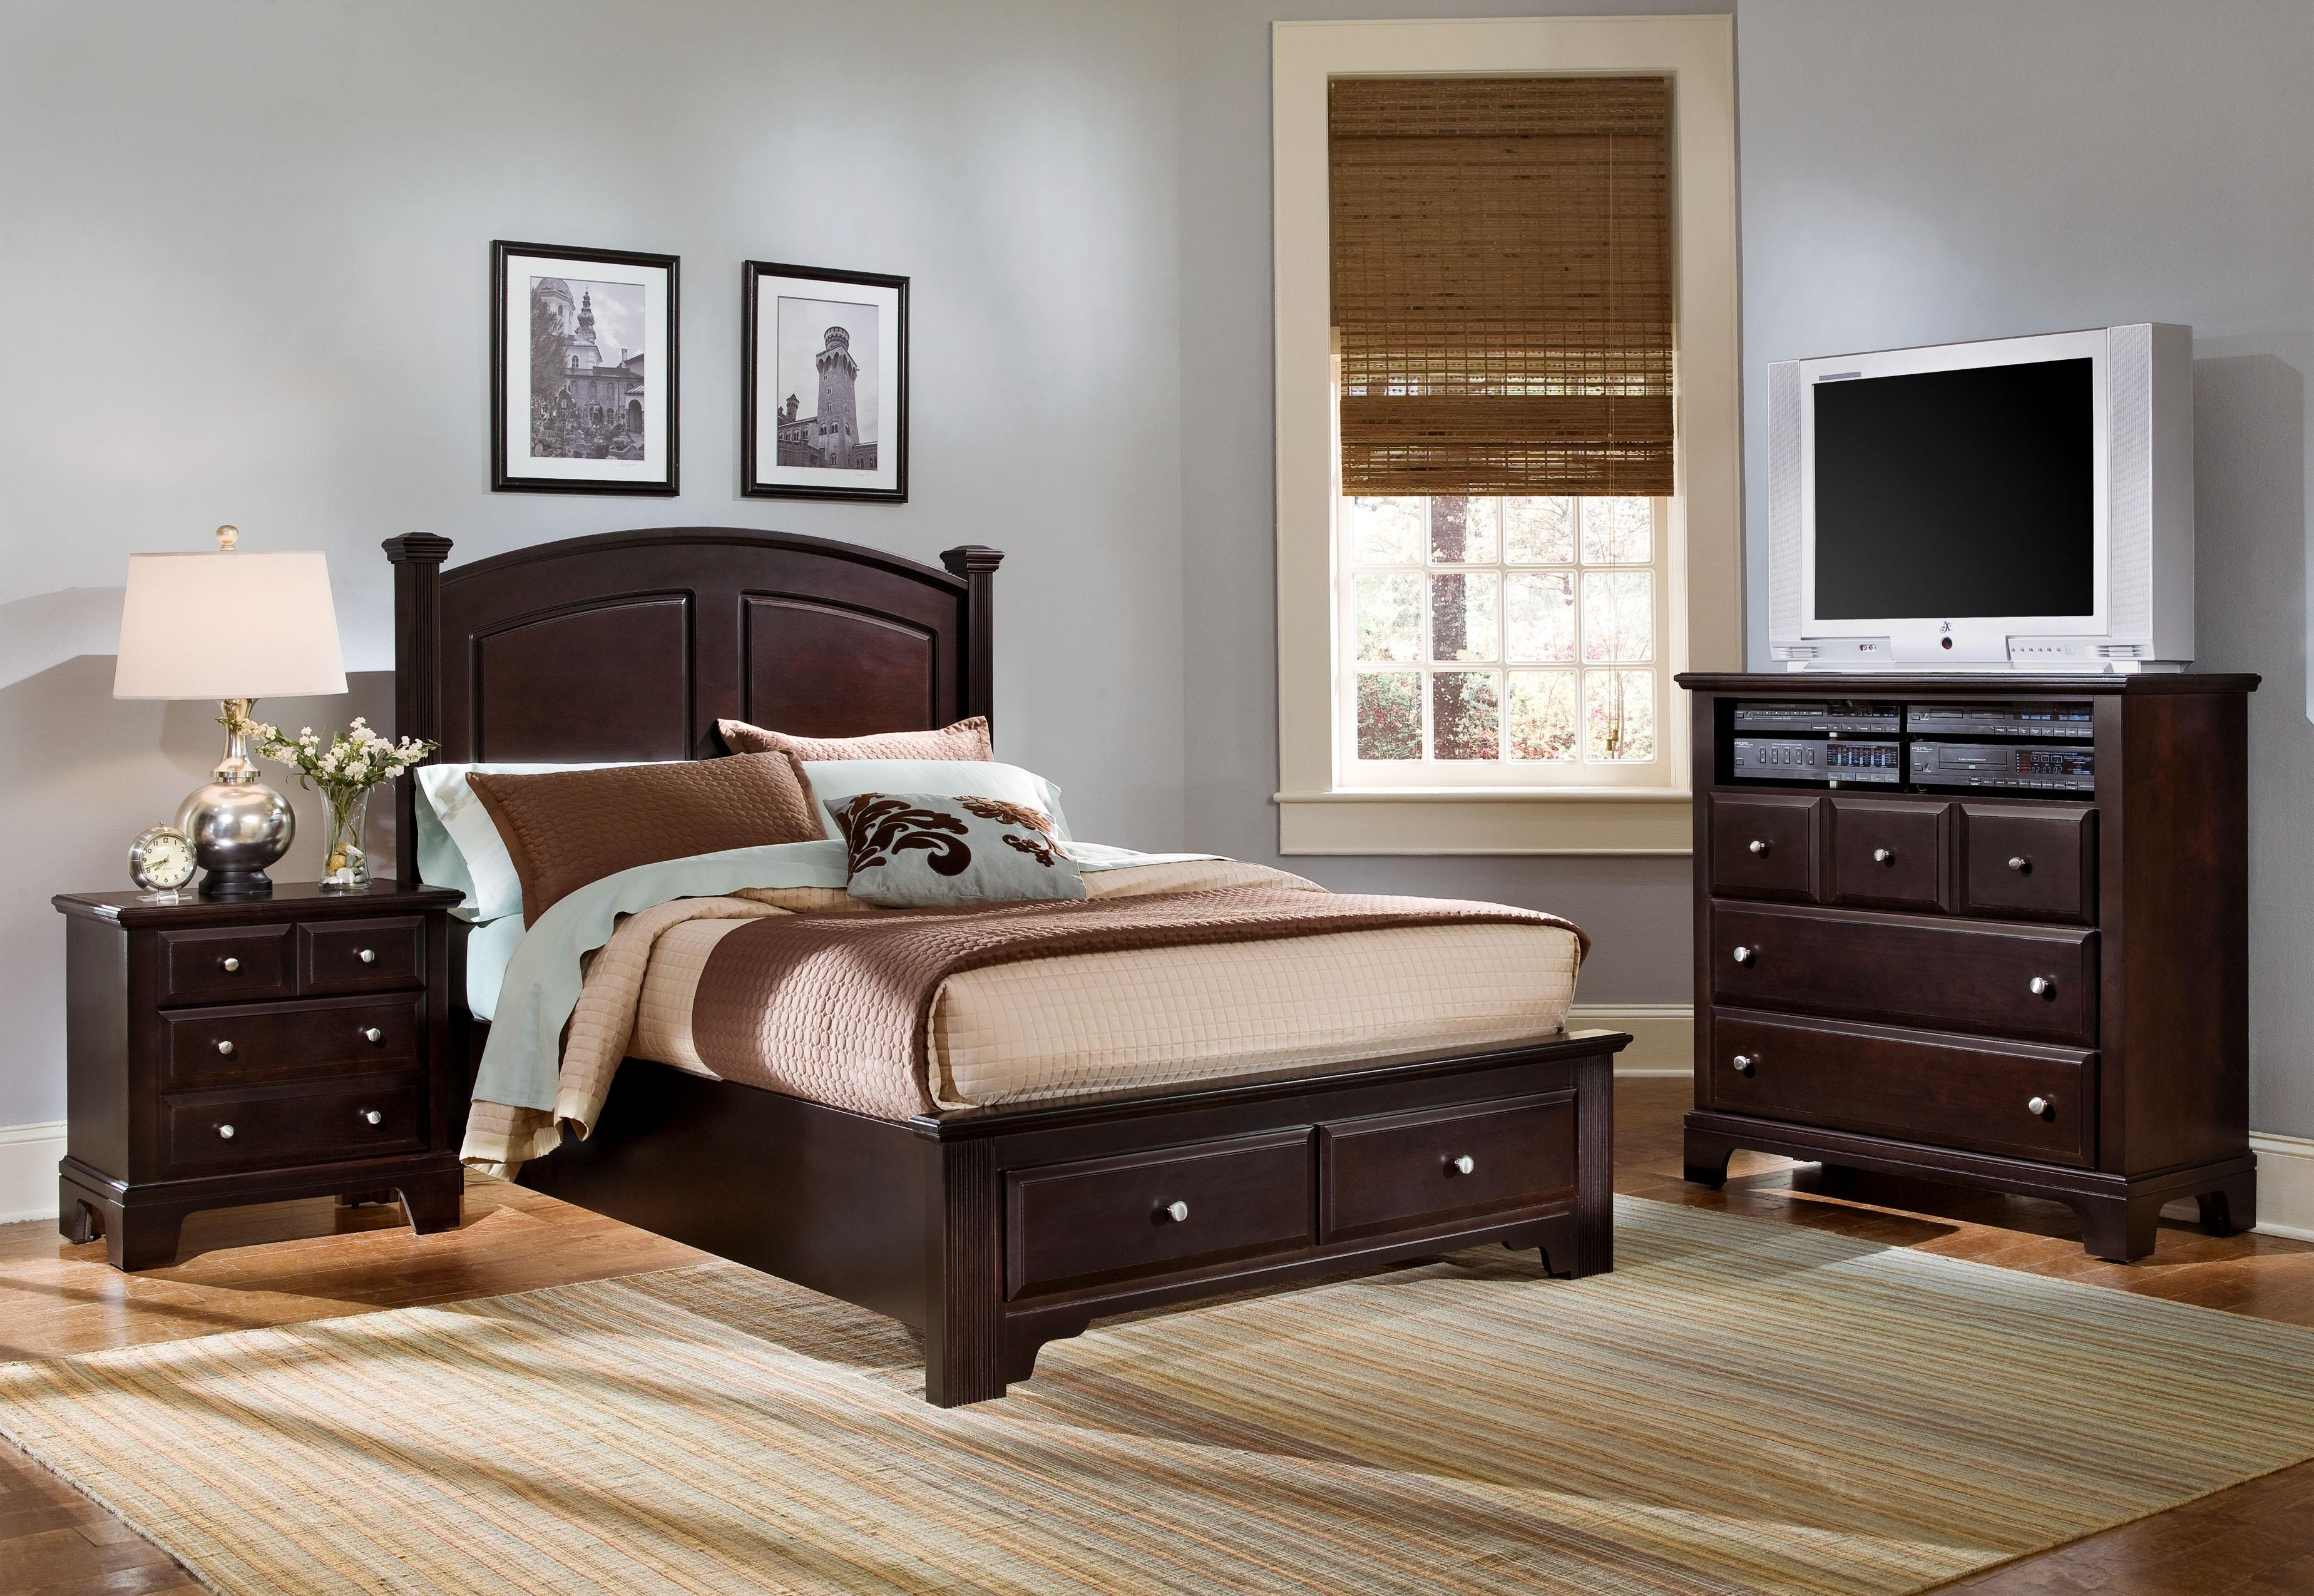 Vaughan Bassett HamiltonFranklin Full Panel Storage Bed Wayside - American furniture and mattress